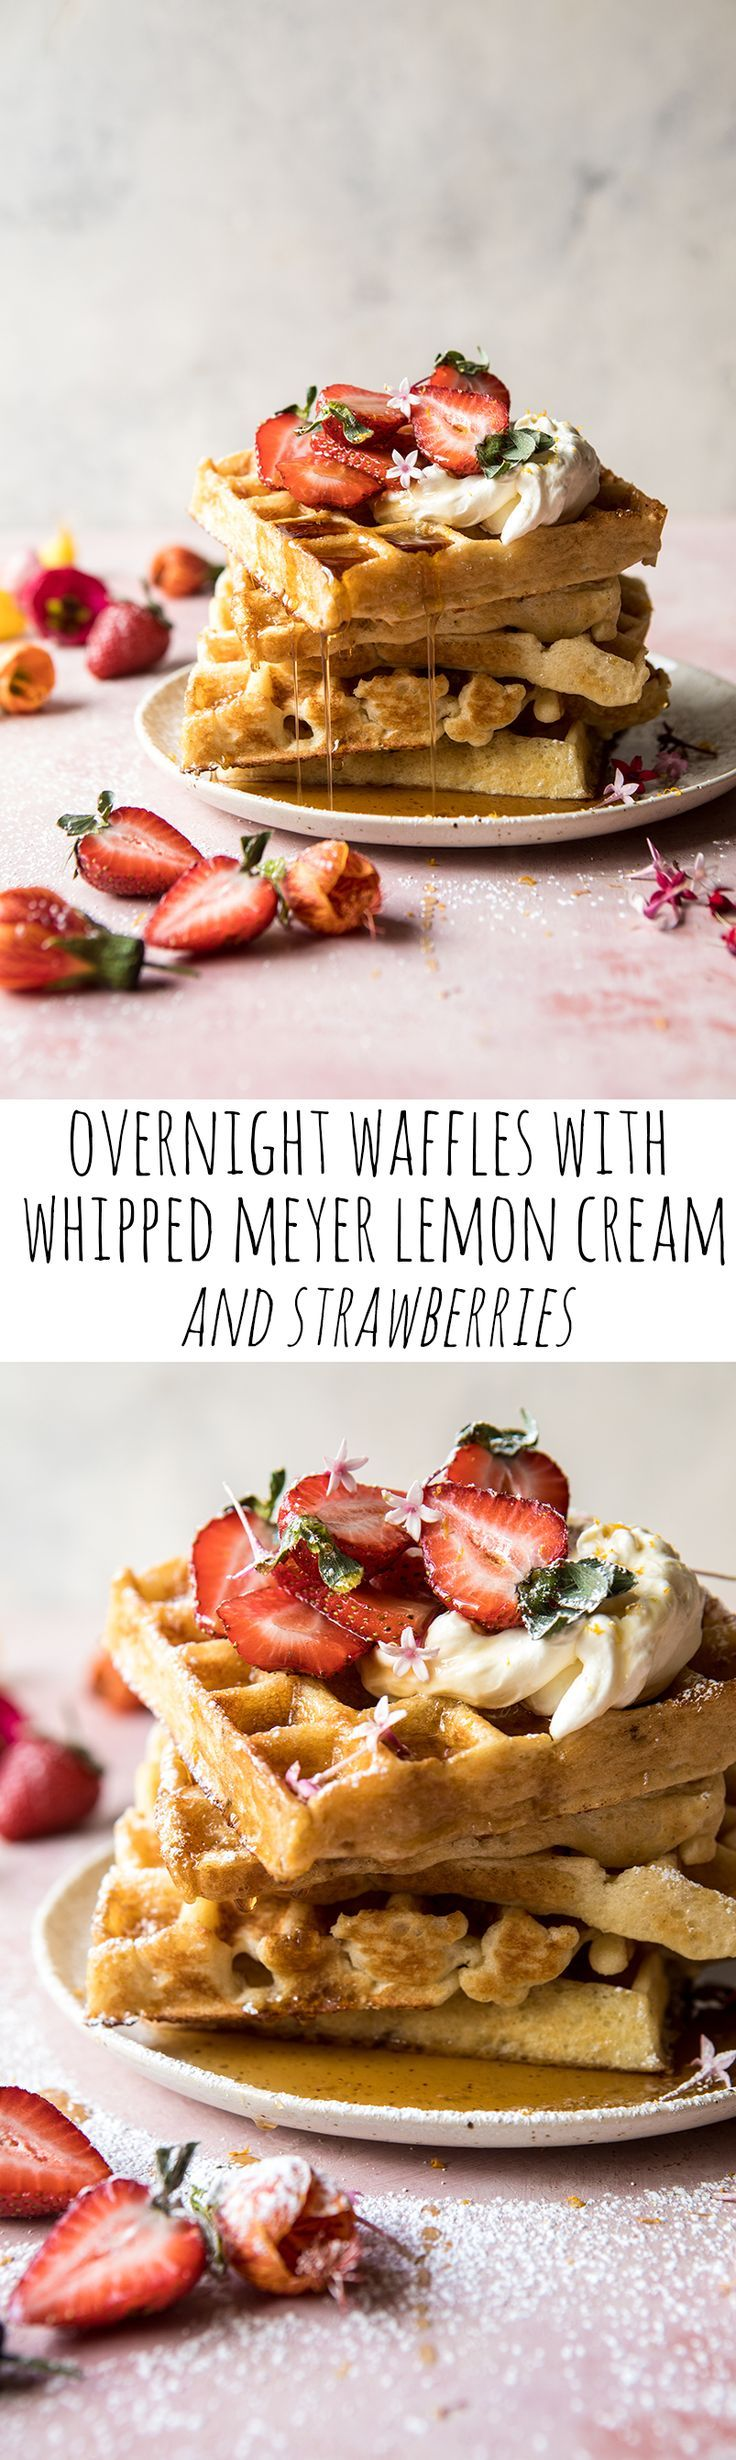 Overnight Waffles with Whipped Meyer Lemon Cream and Strawberries | halfbakedharvest.com #brunch #breakfast #waffles #easter #mothersday